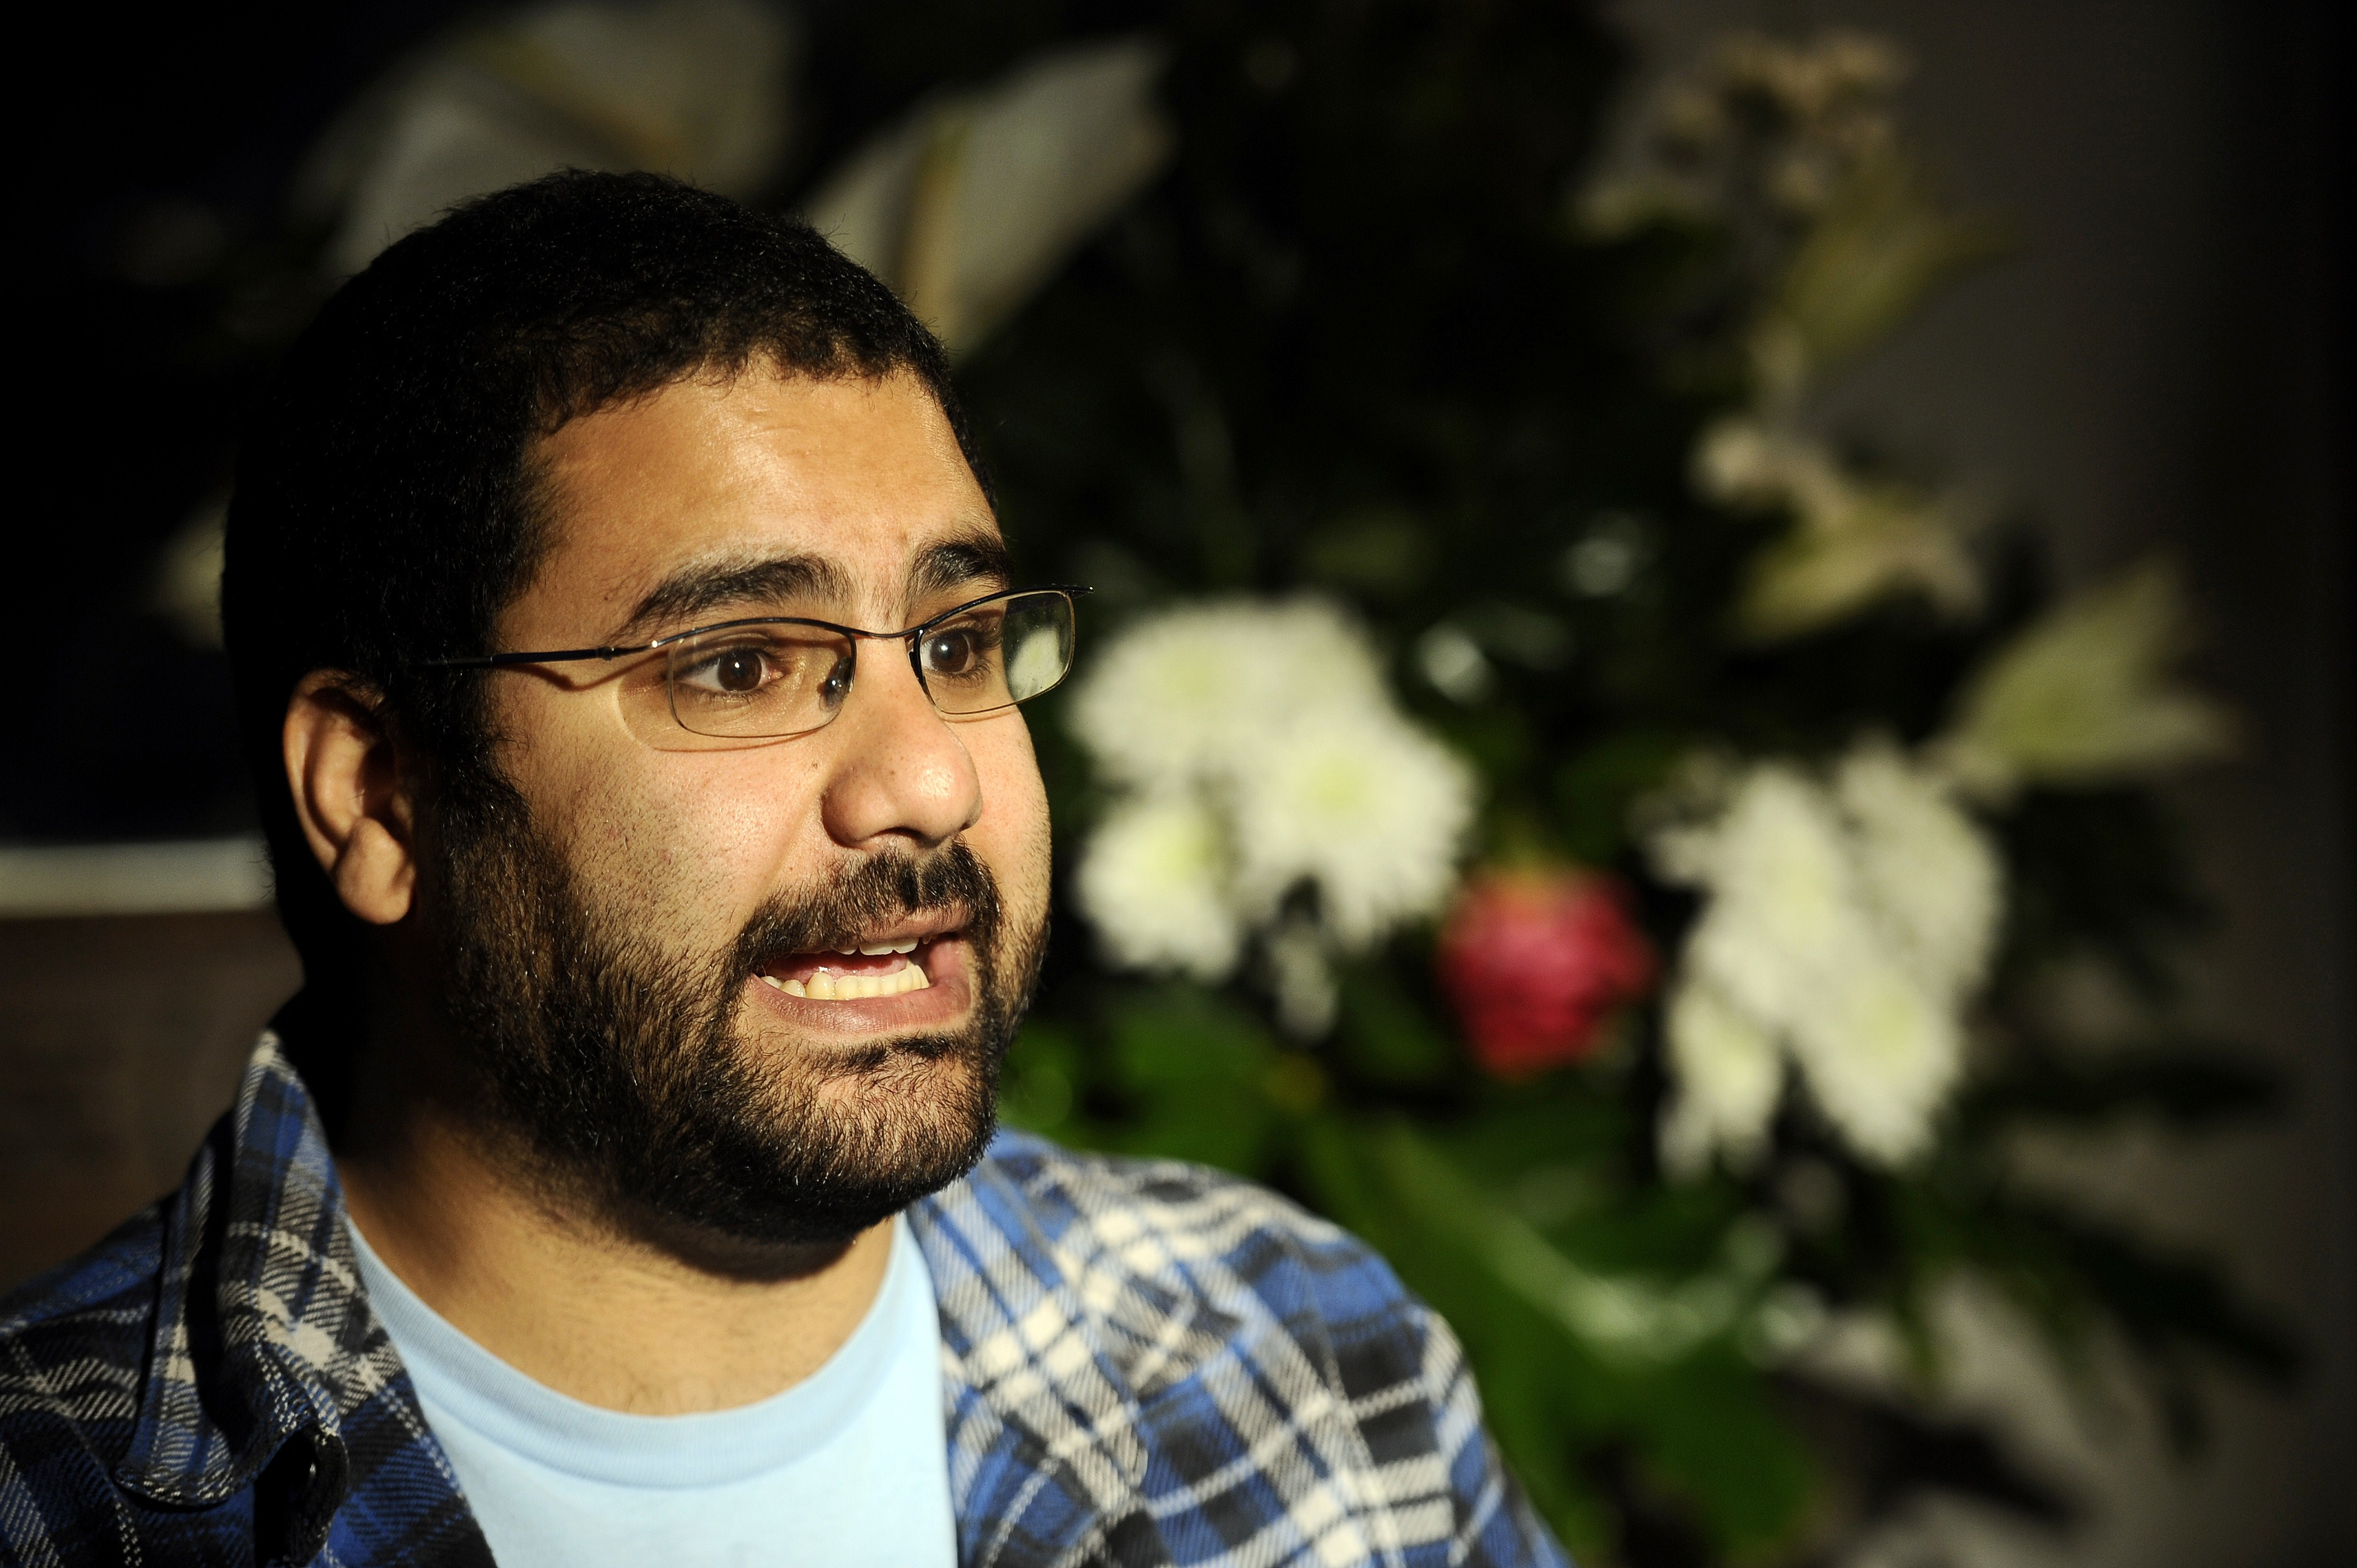 A photo take on December 26, 2011, shows Egyptian blogger and activist Alaa Abdel Fattah speaking during a TV interview at his house in Cairo, a day after his release. A leftwing activist who played a prominent role in the 2011 uprising against Hosni Mubarak stands trial on March 23, 2014, amid a crackdown on protests by the new military-installed regime.   (AFP PHOTO / Filippo MONTEFORTE)